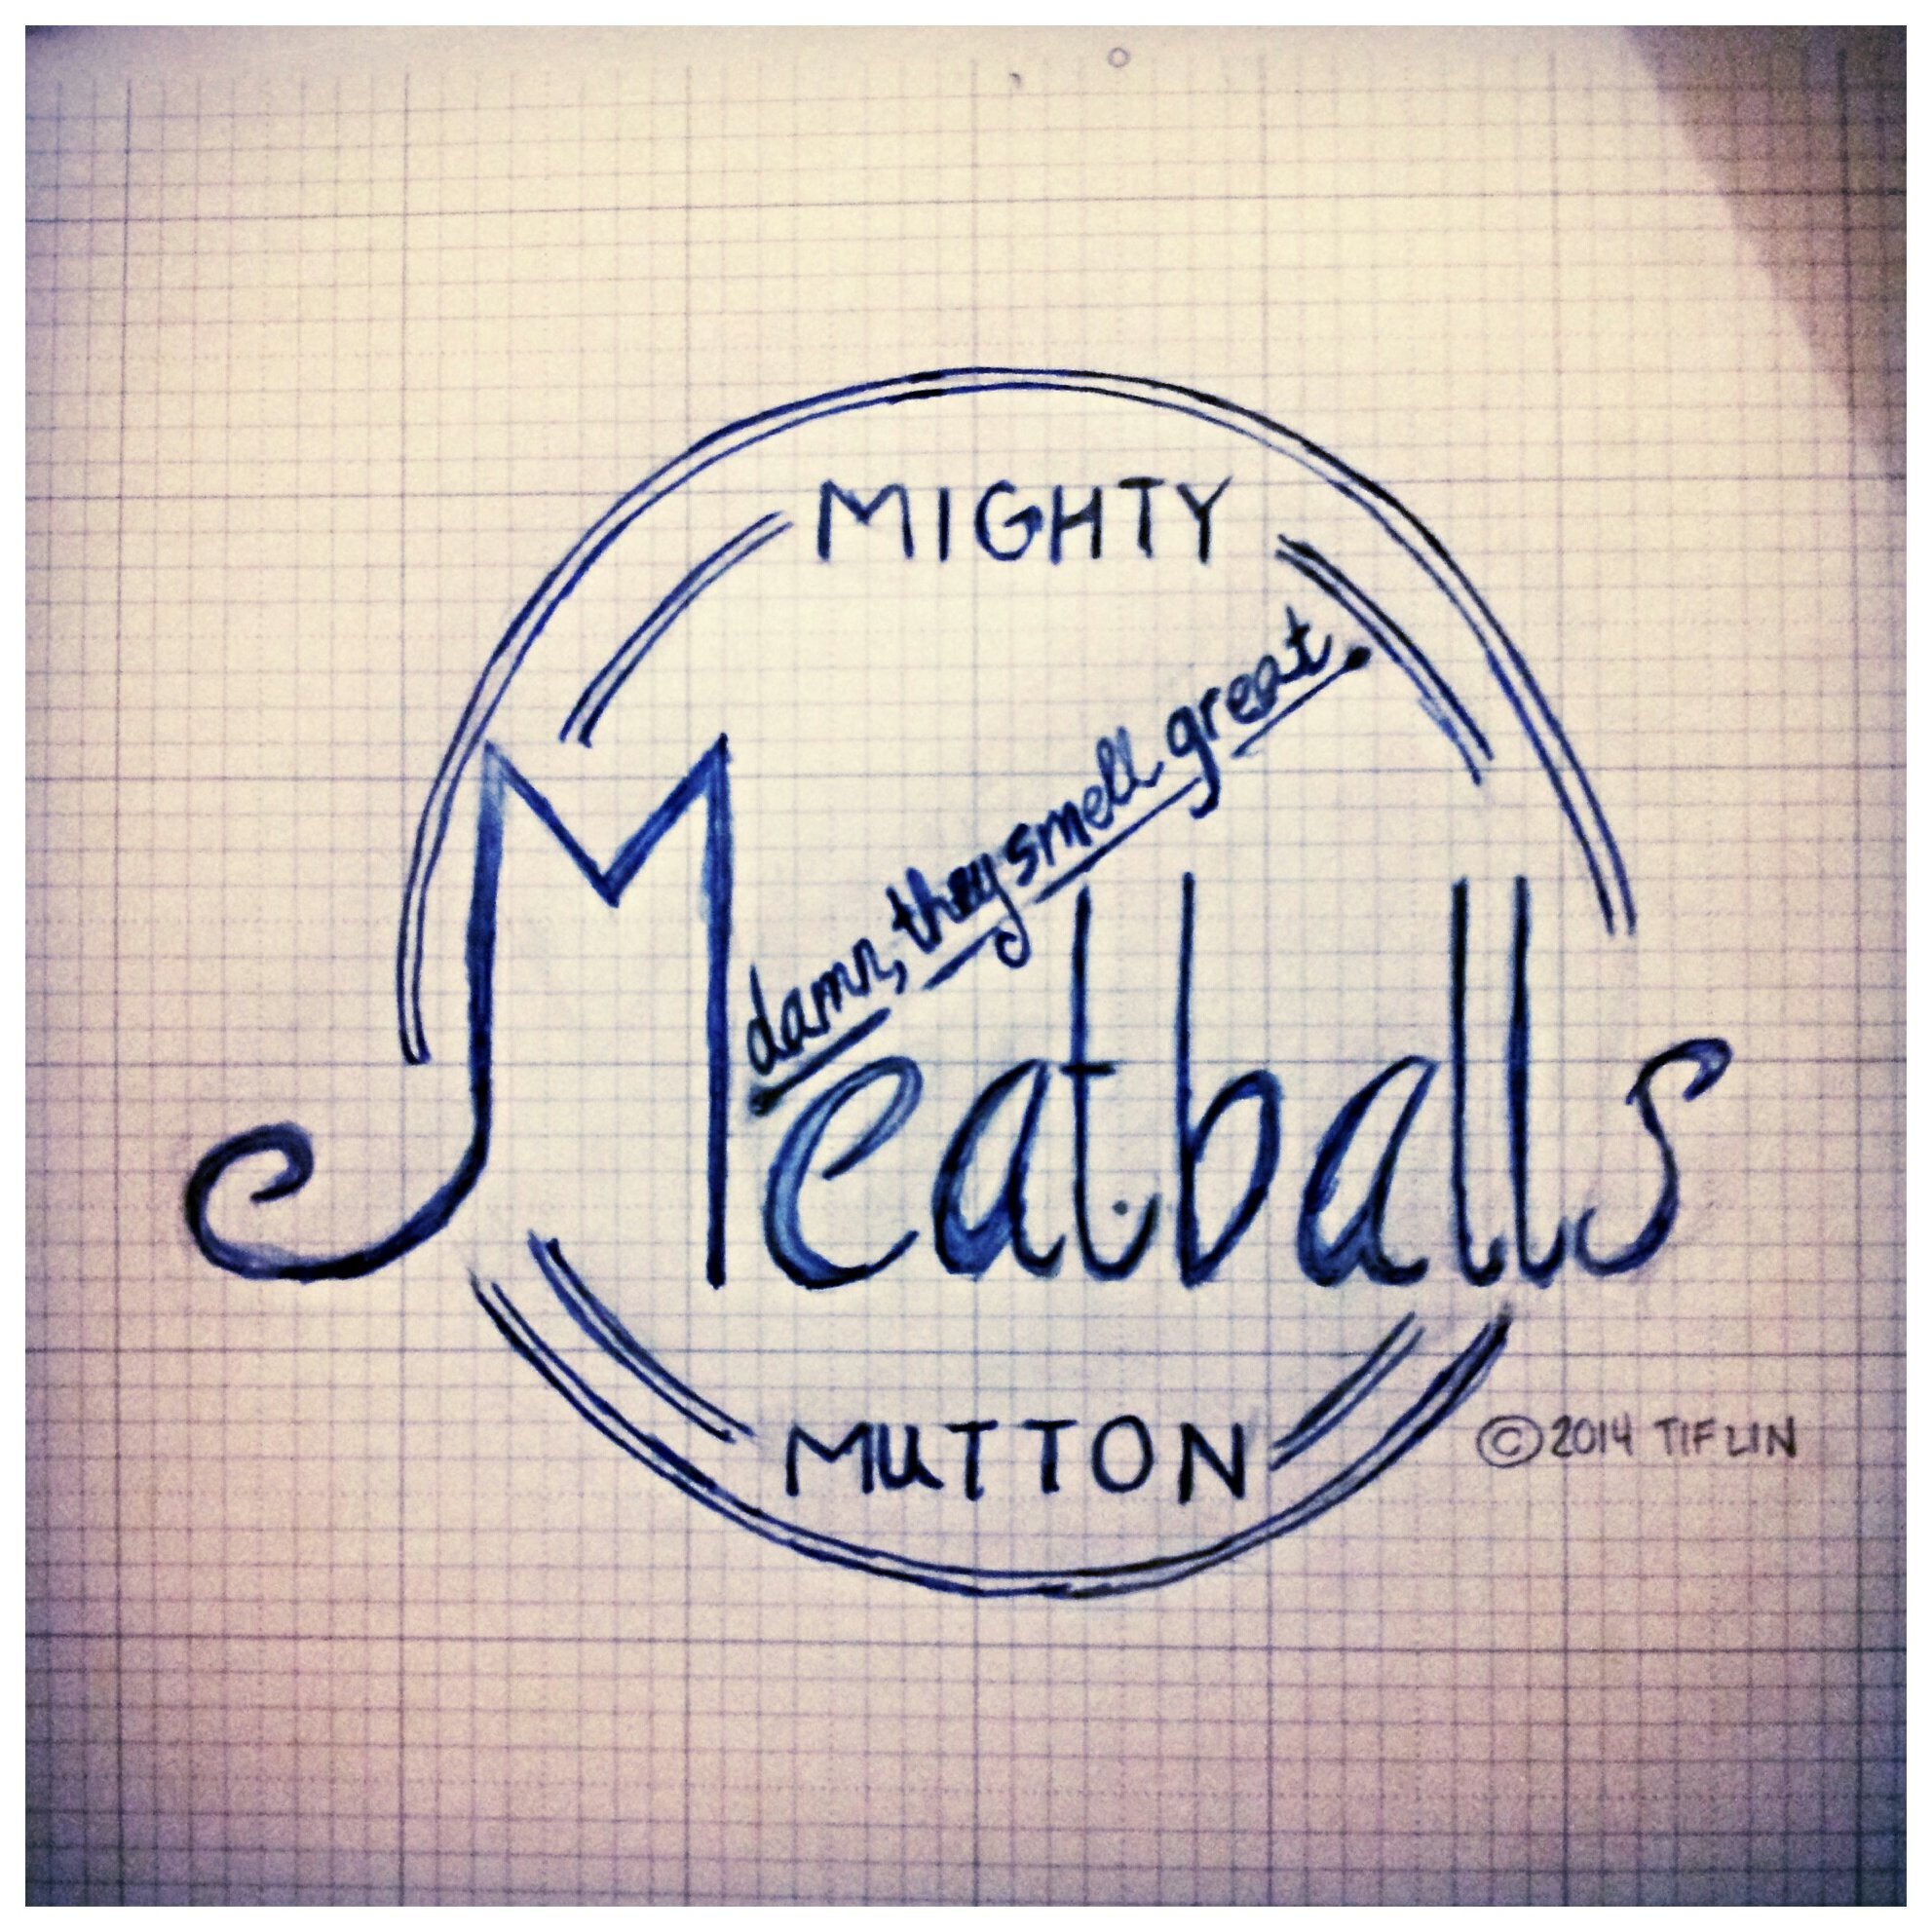 Journal entry for tonight. I made a #logo for our #dinner, #meatballs. What'd you have?